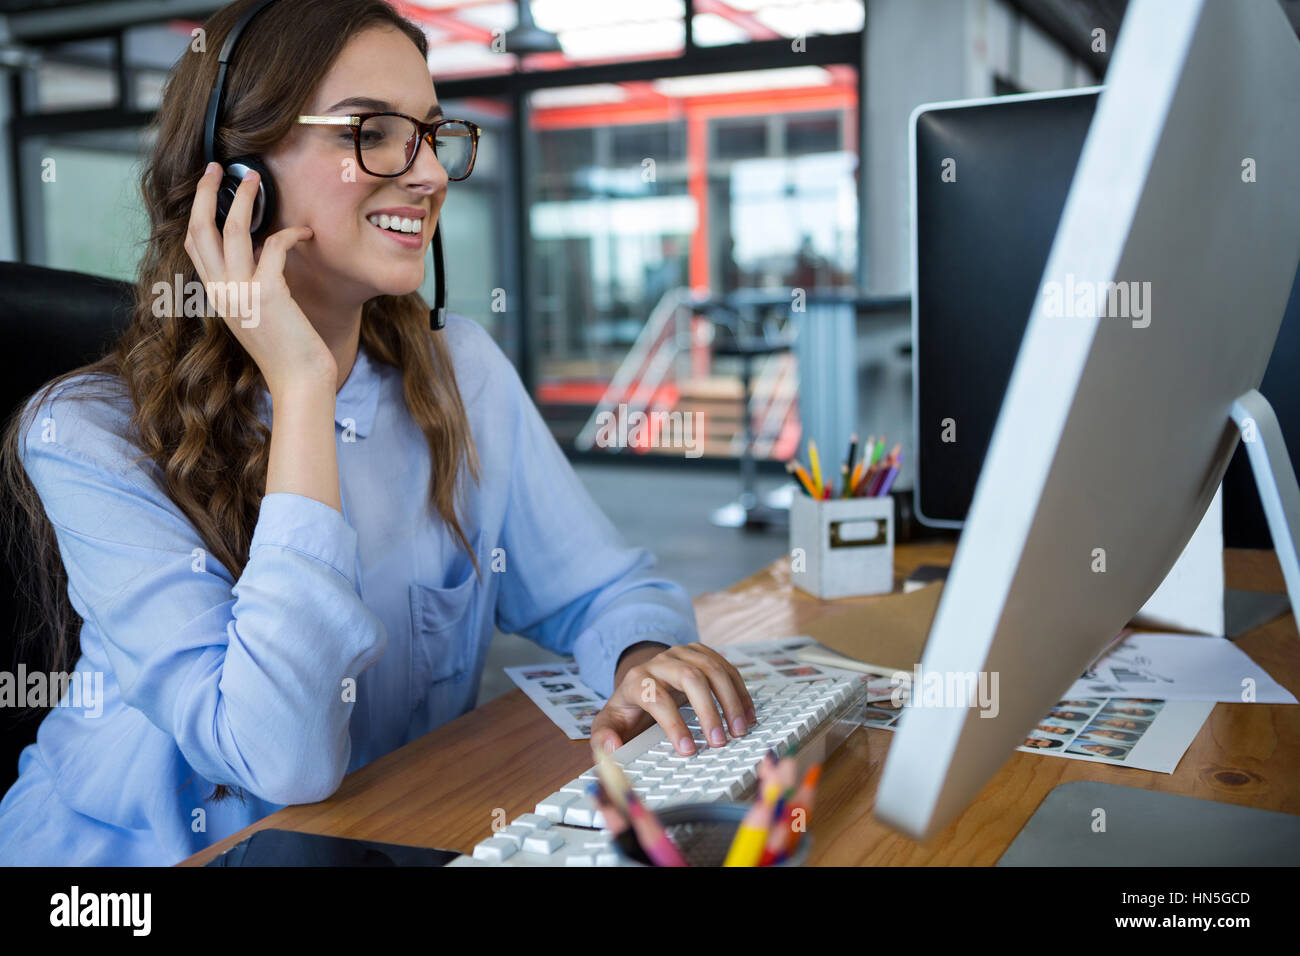 Female graphic designer working over computer at desk in office - Stock Image